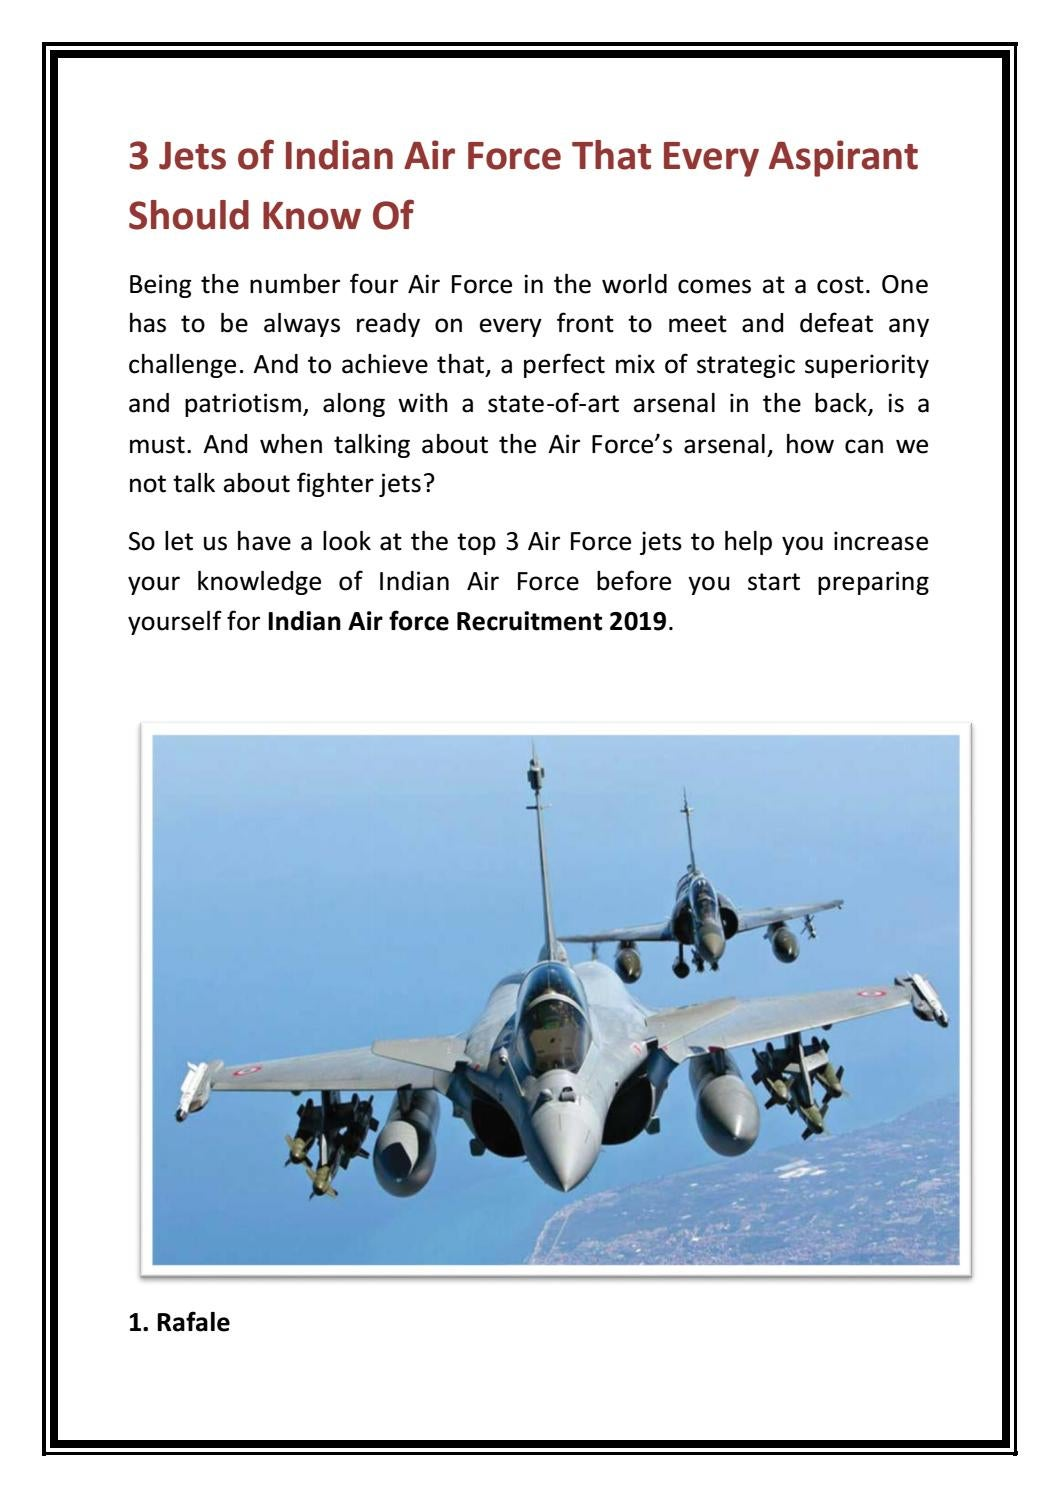 3 Jets of Indian Air Force That Every Aspirant Should Know